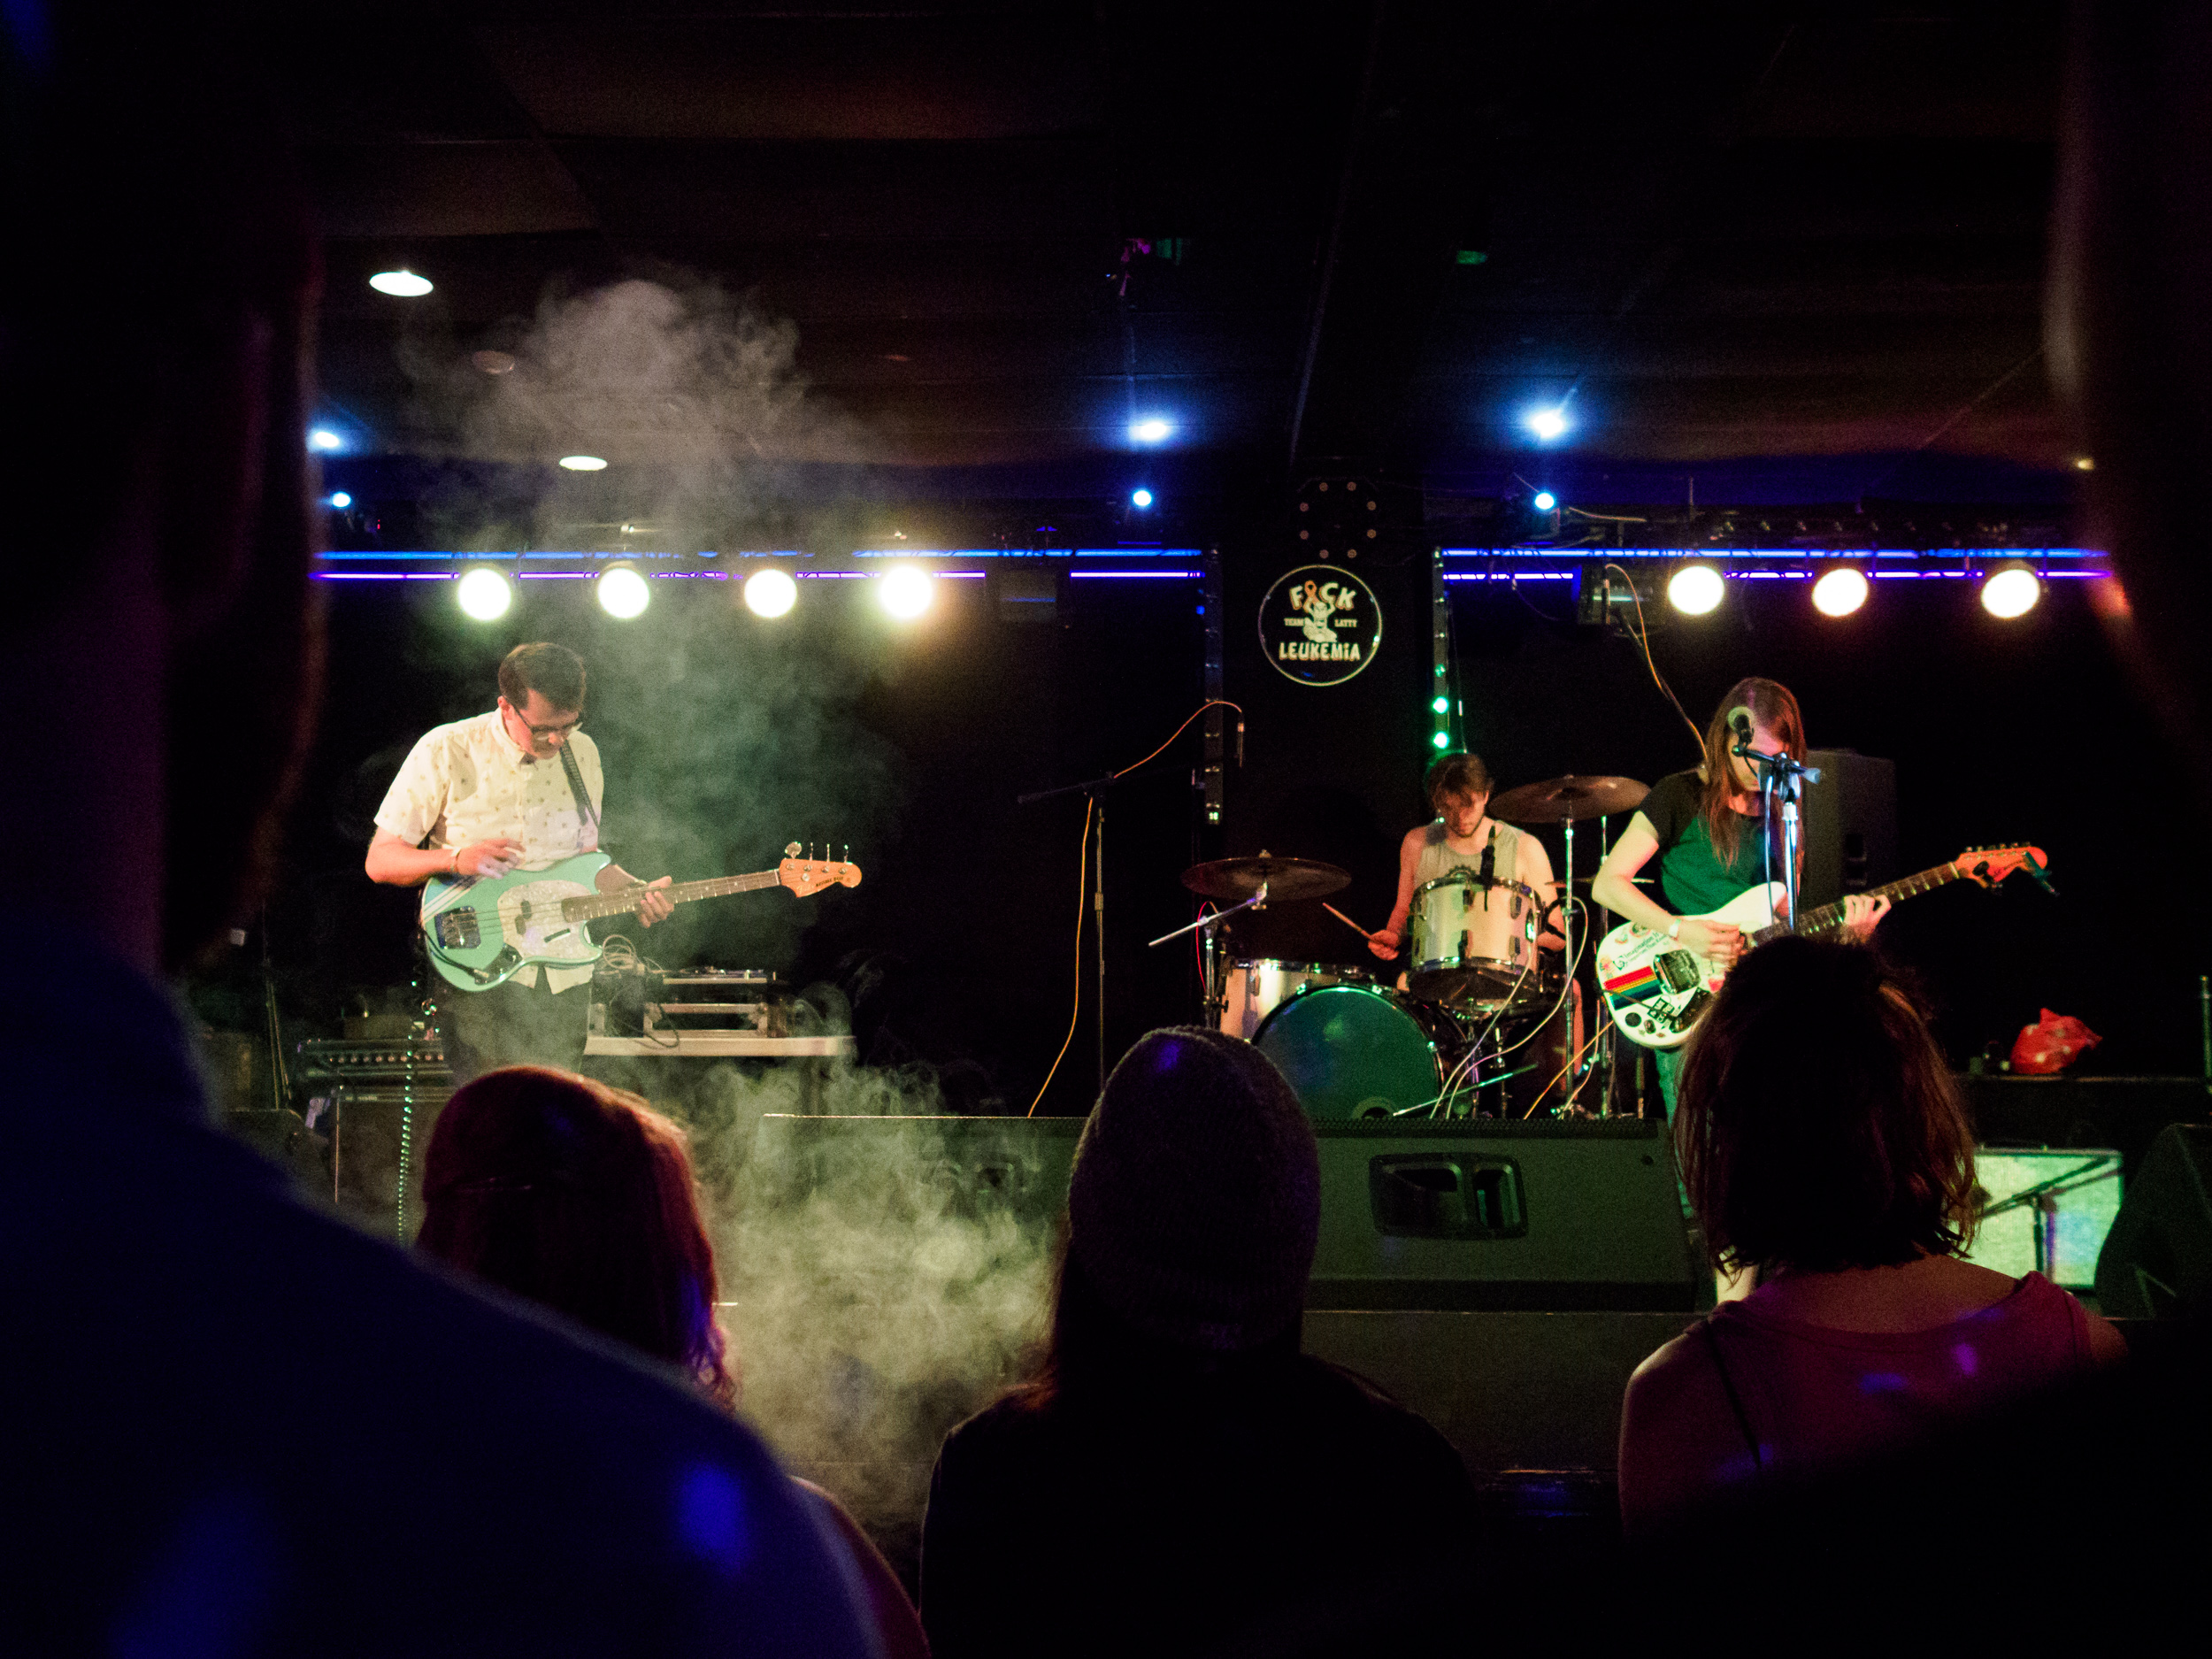 17-06-10_Concert_at_the_Foundry_6100465.JPG